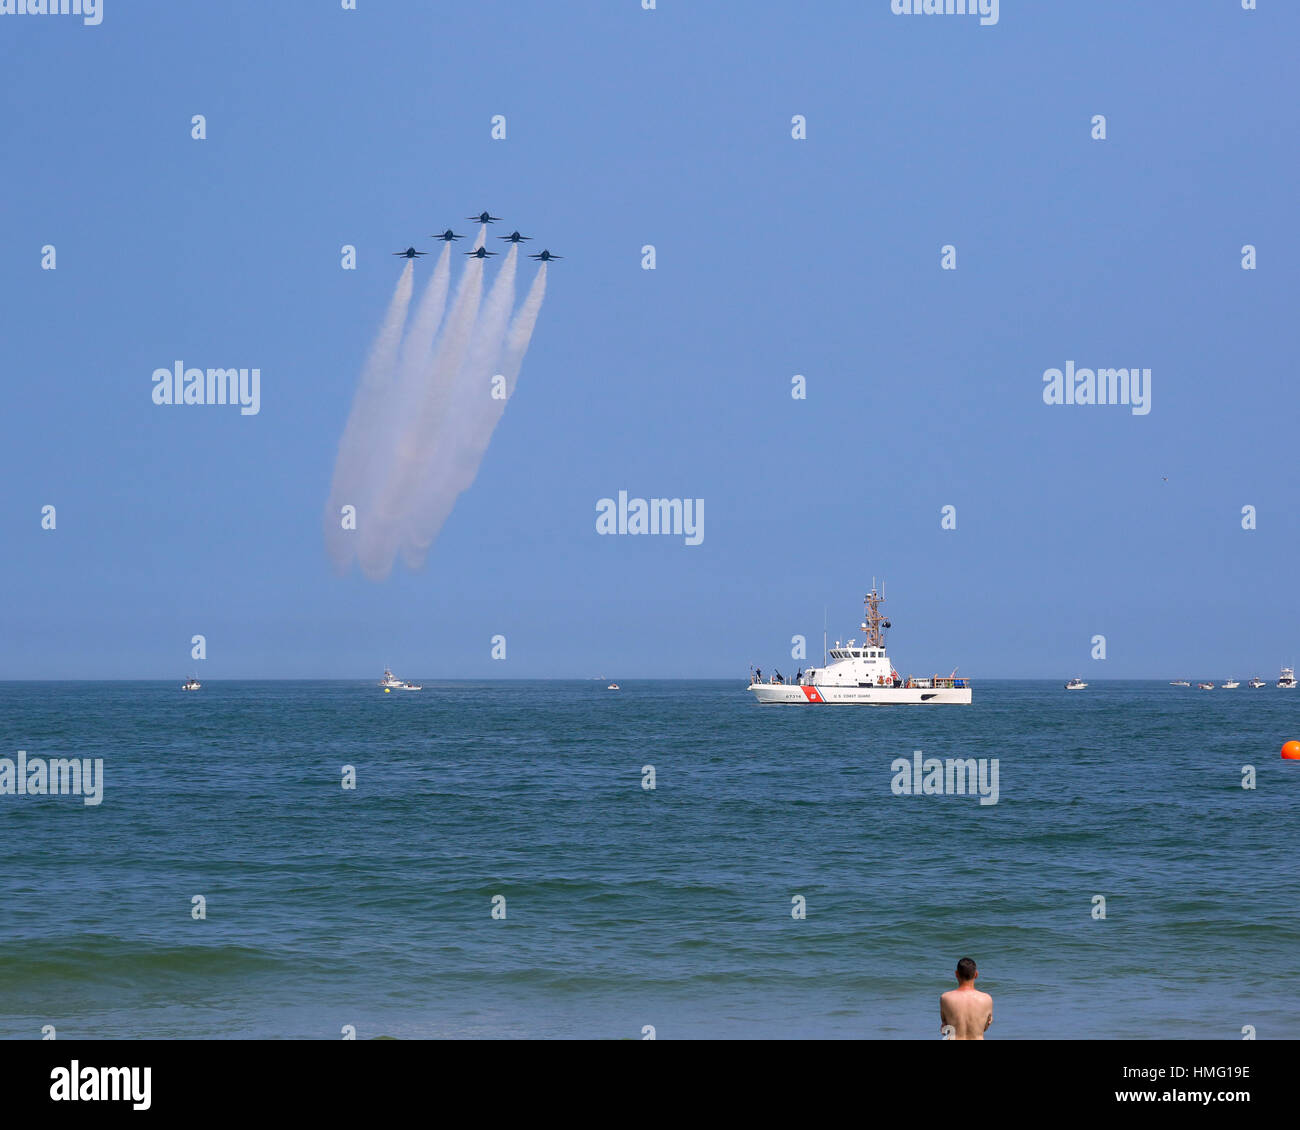 Six U.S. Navy Blue Angels F/A-18 aircraft in Delta Formation overflying USCGC Finback (WPB-87314) - Stock Image